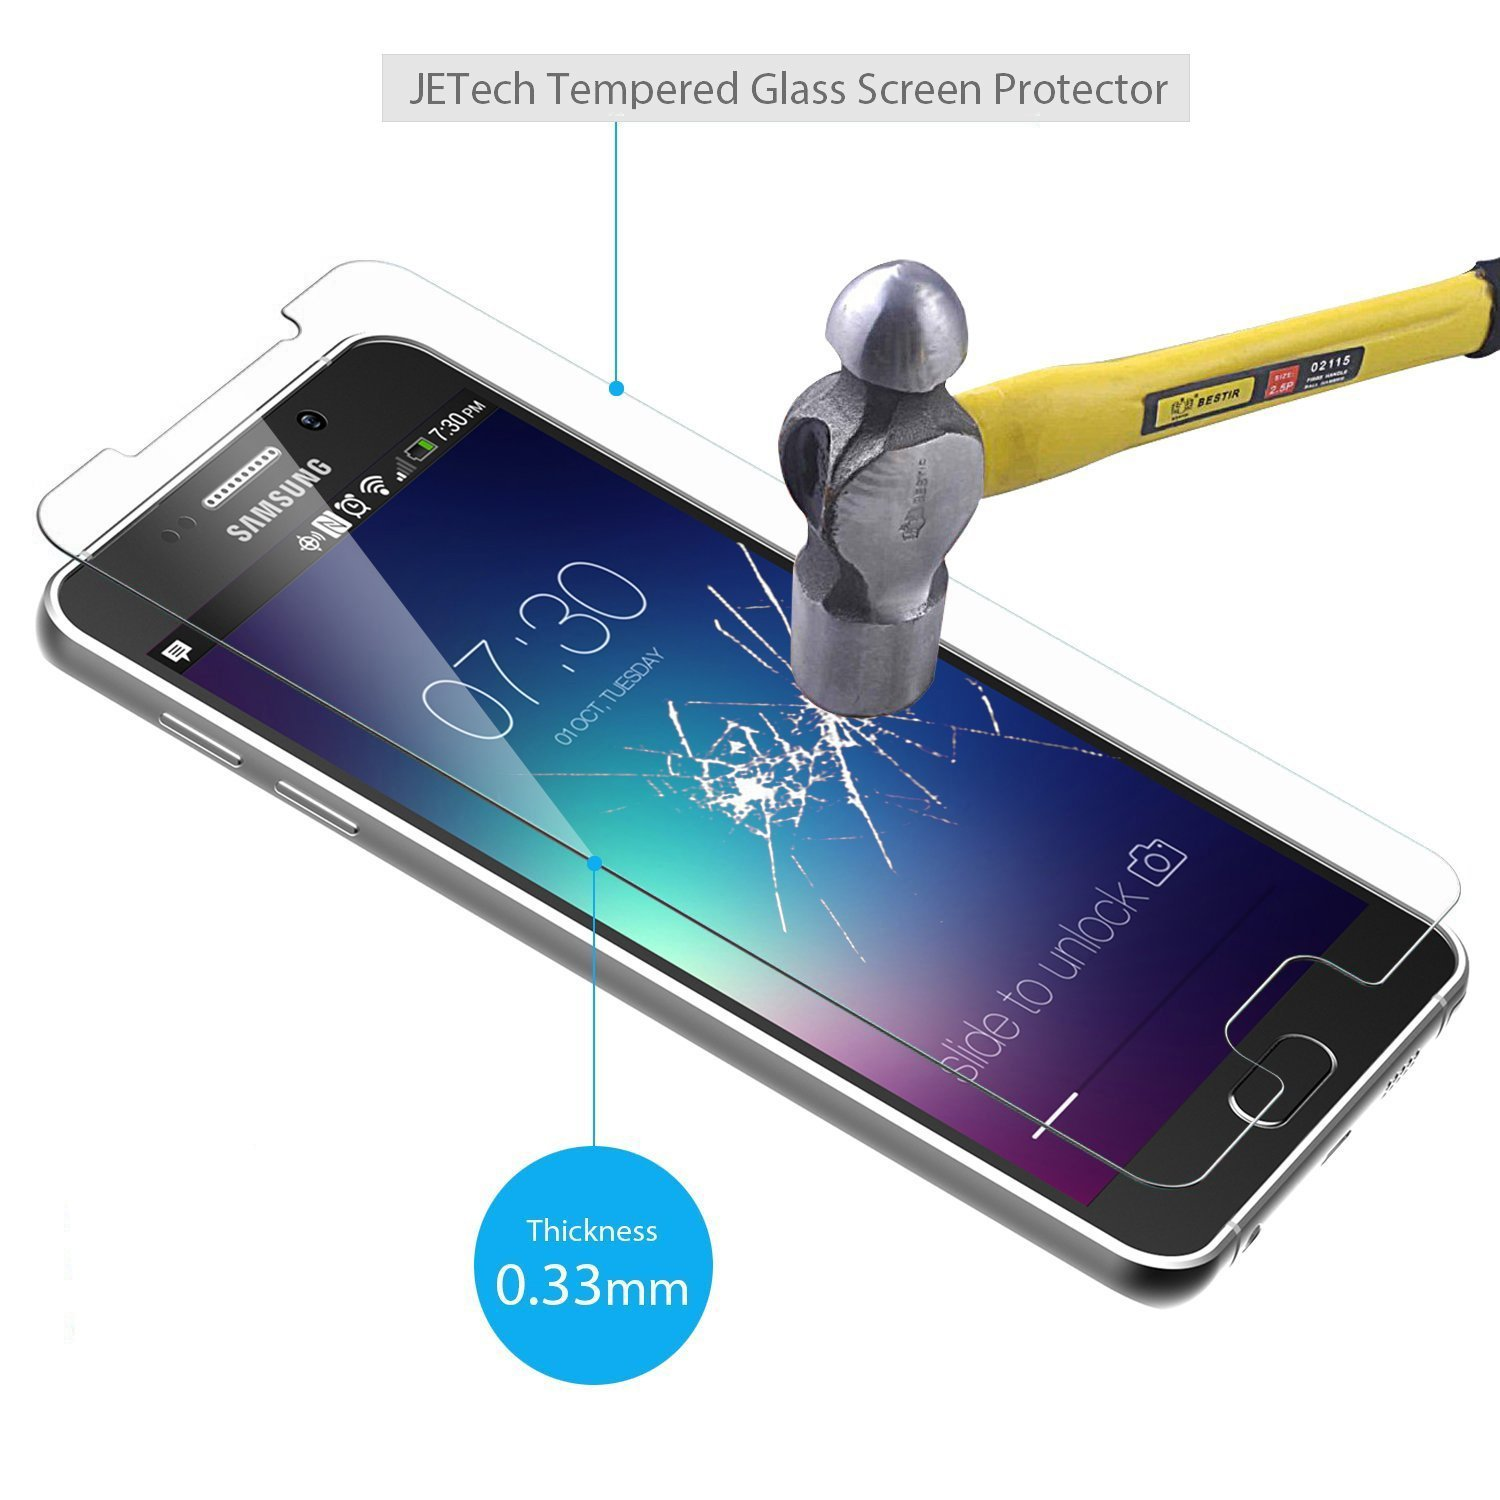 JETech Premium Tempered Glass Screen Protector Film for Samsung Galaxy Note 5